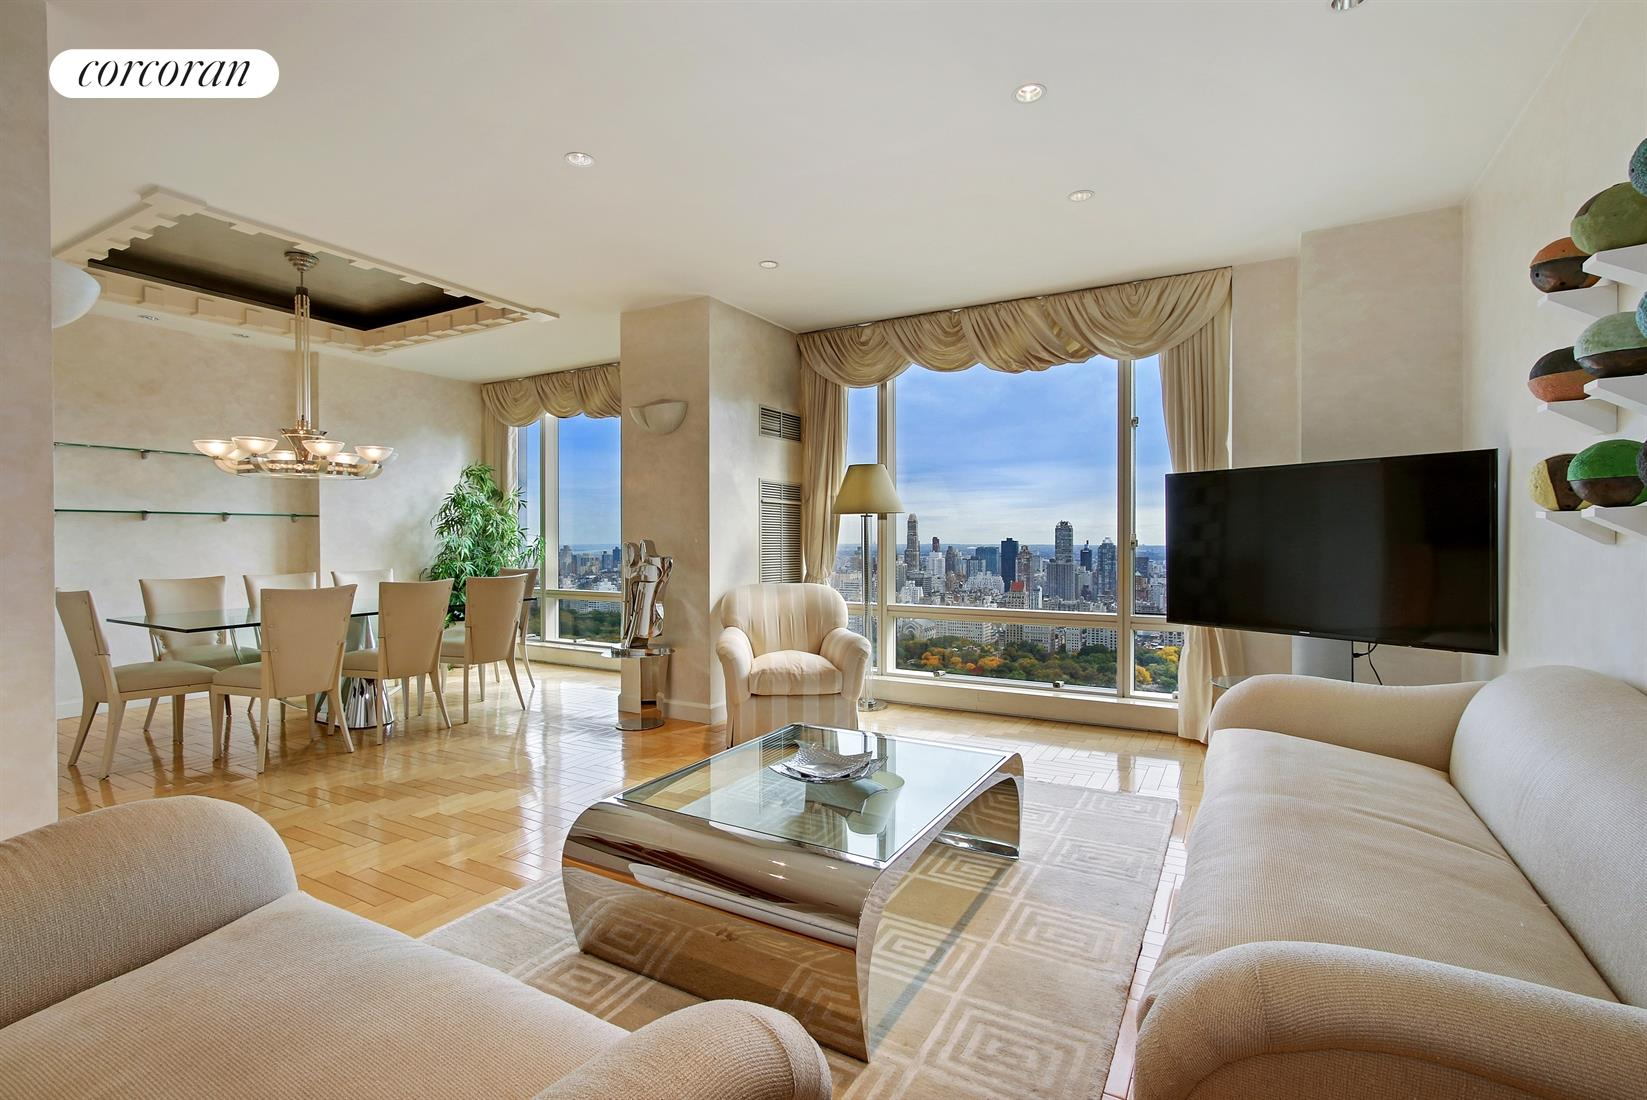 1 Central Park West, 42B, Oversized Living Room w/ AMAZING Central Park View